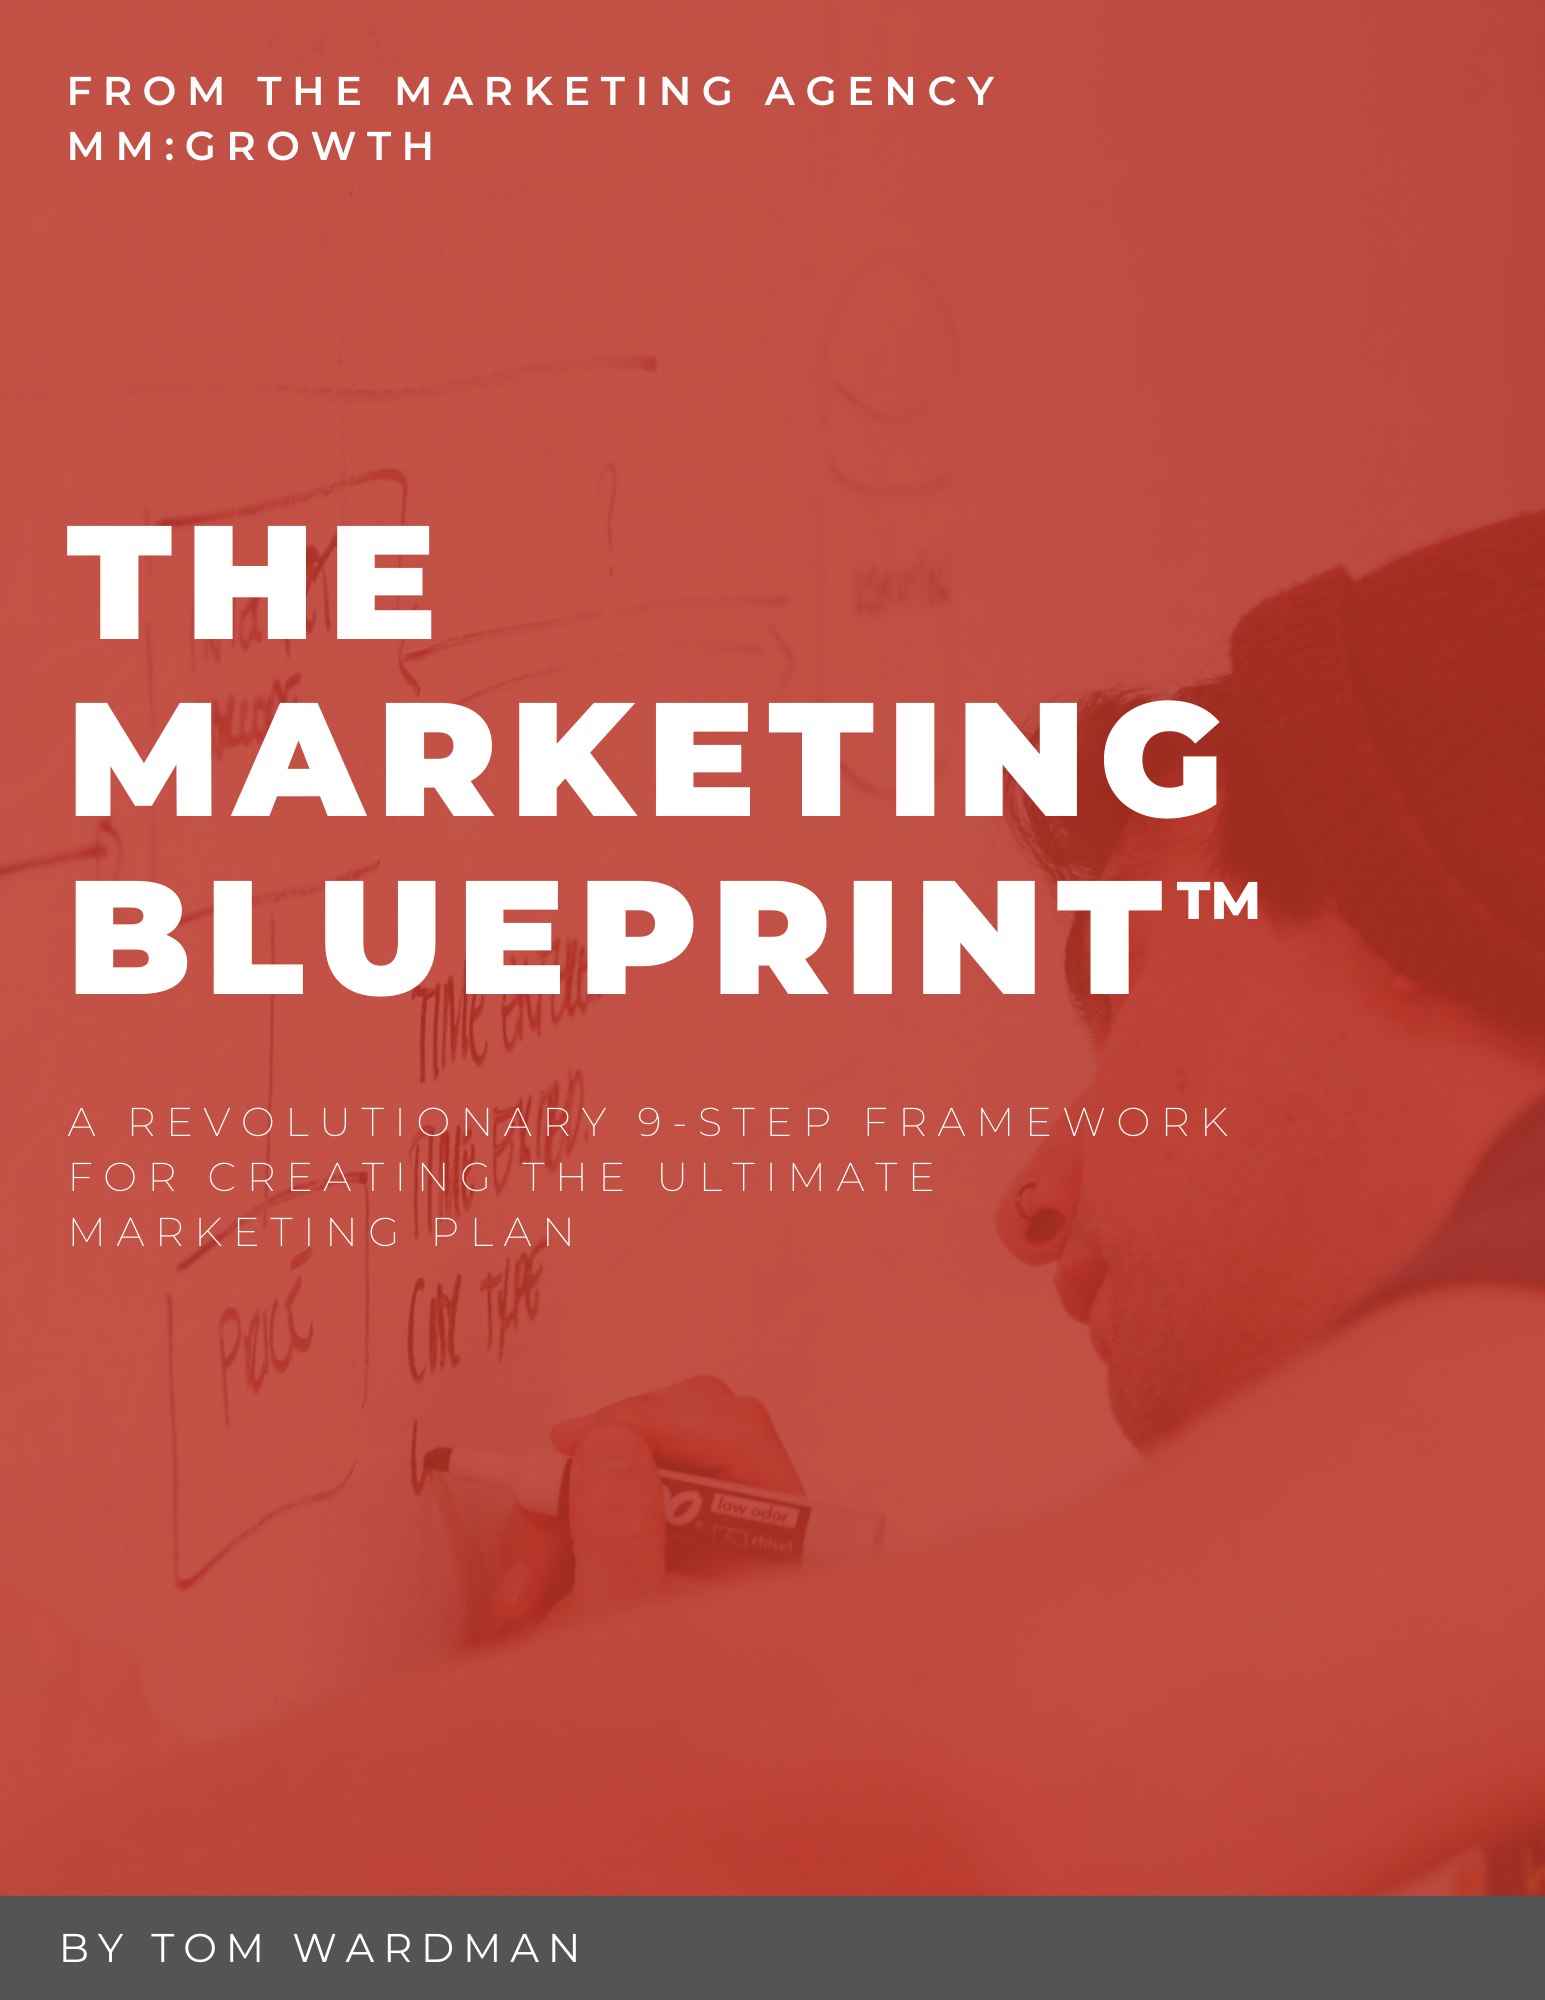 The Marketing BLUEPRINT | Front cover of the marketing plan blueprint